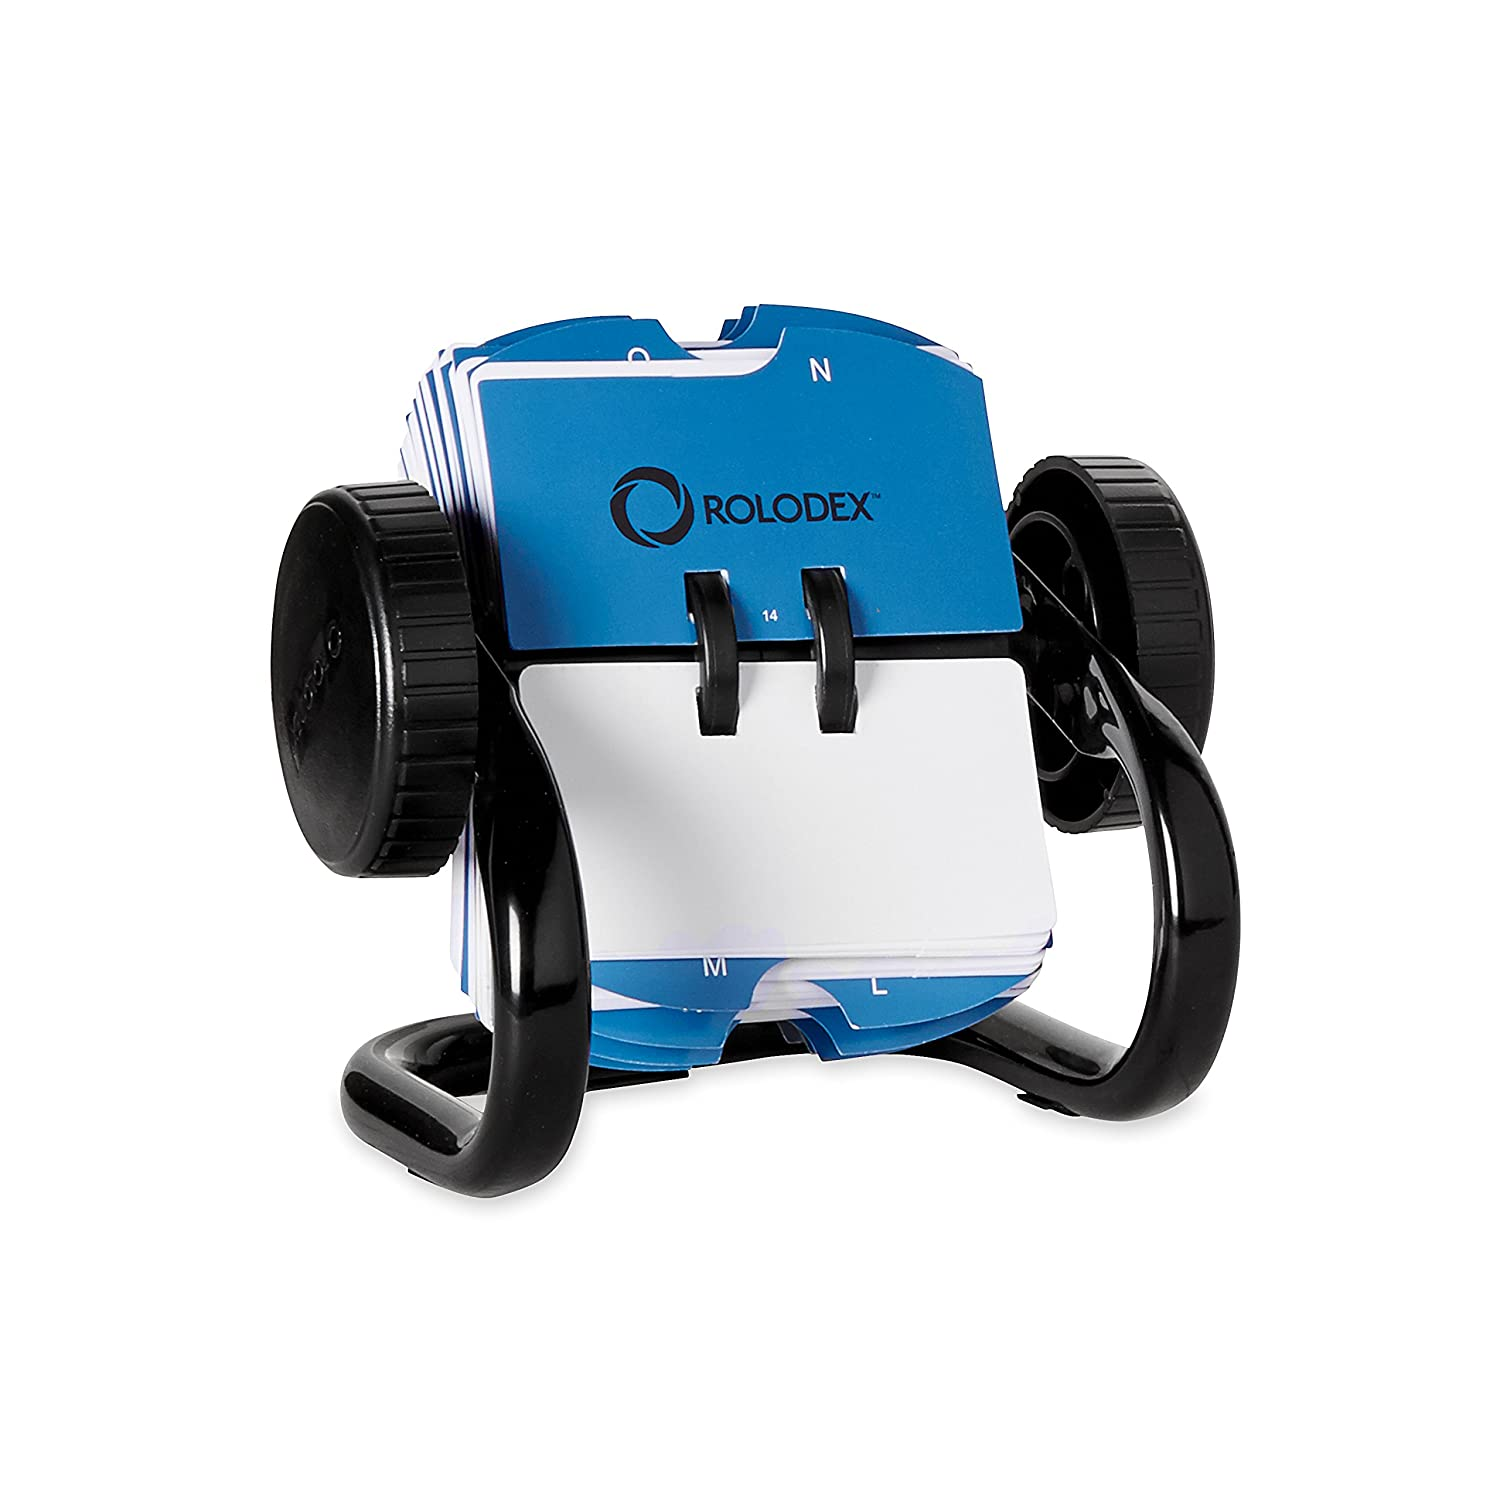 B00006IBS5 Rolodex Open Rotary Business Card File 8129Y3ZtpnL